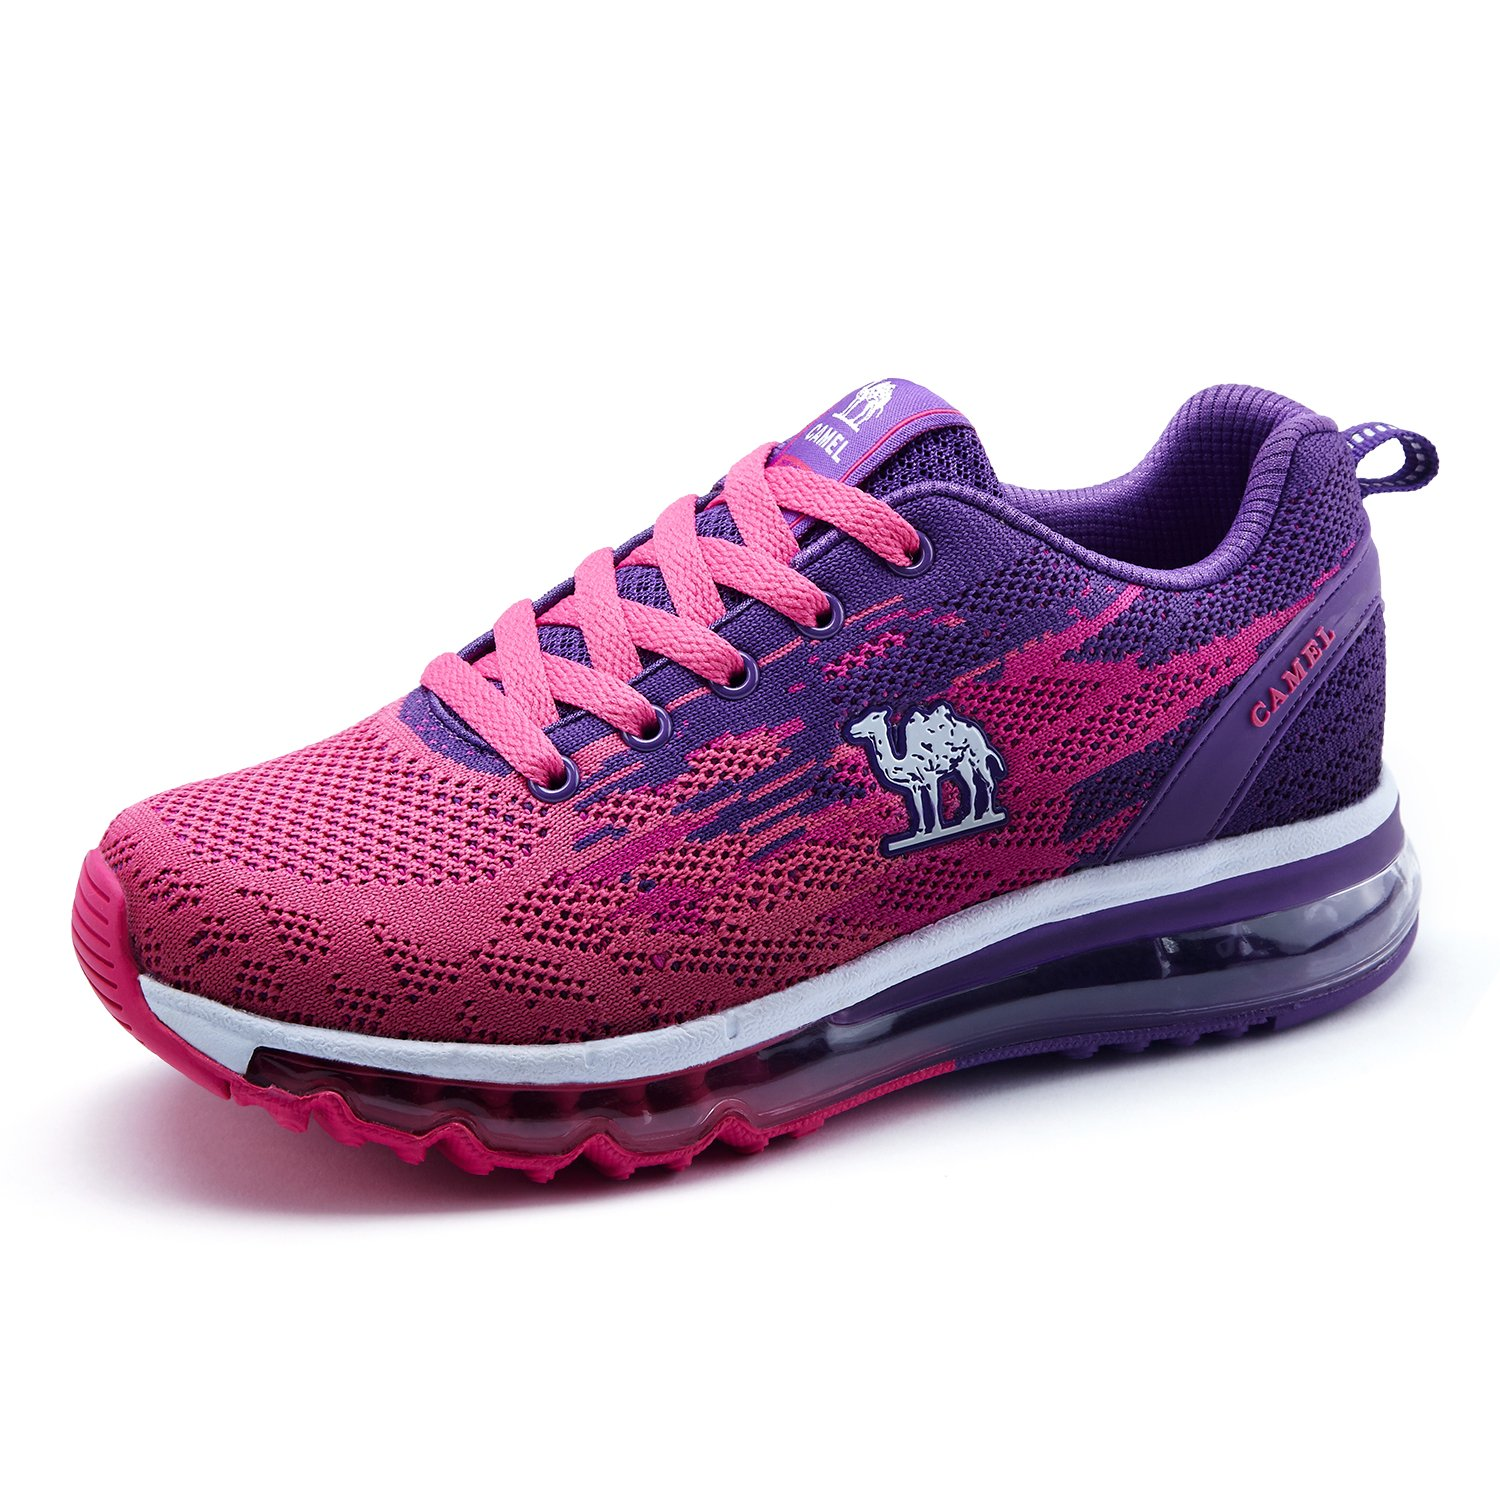 Camel Women's Fashion Sneakers Outdoor Lace-up Trail Running Shoes with Air Cushion Lightweight Breathable Color Purple Size 7.5